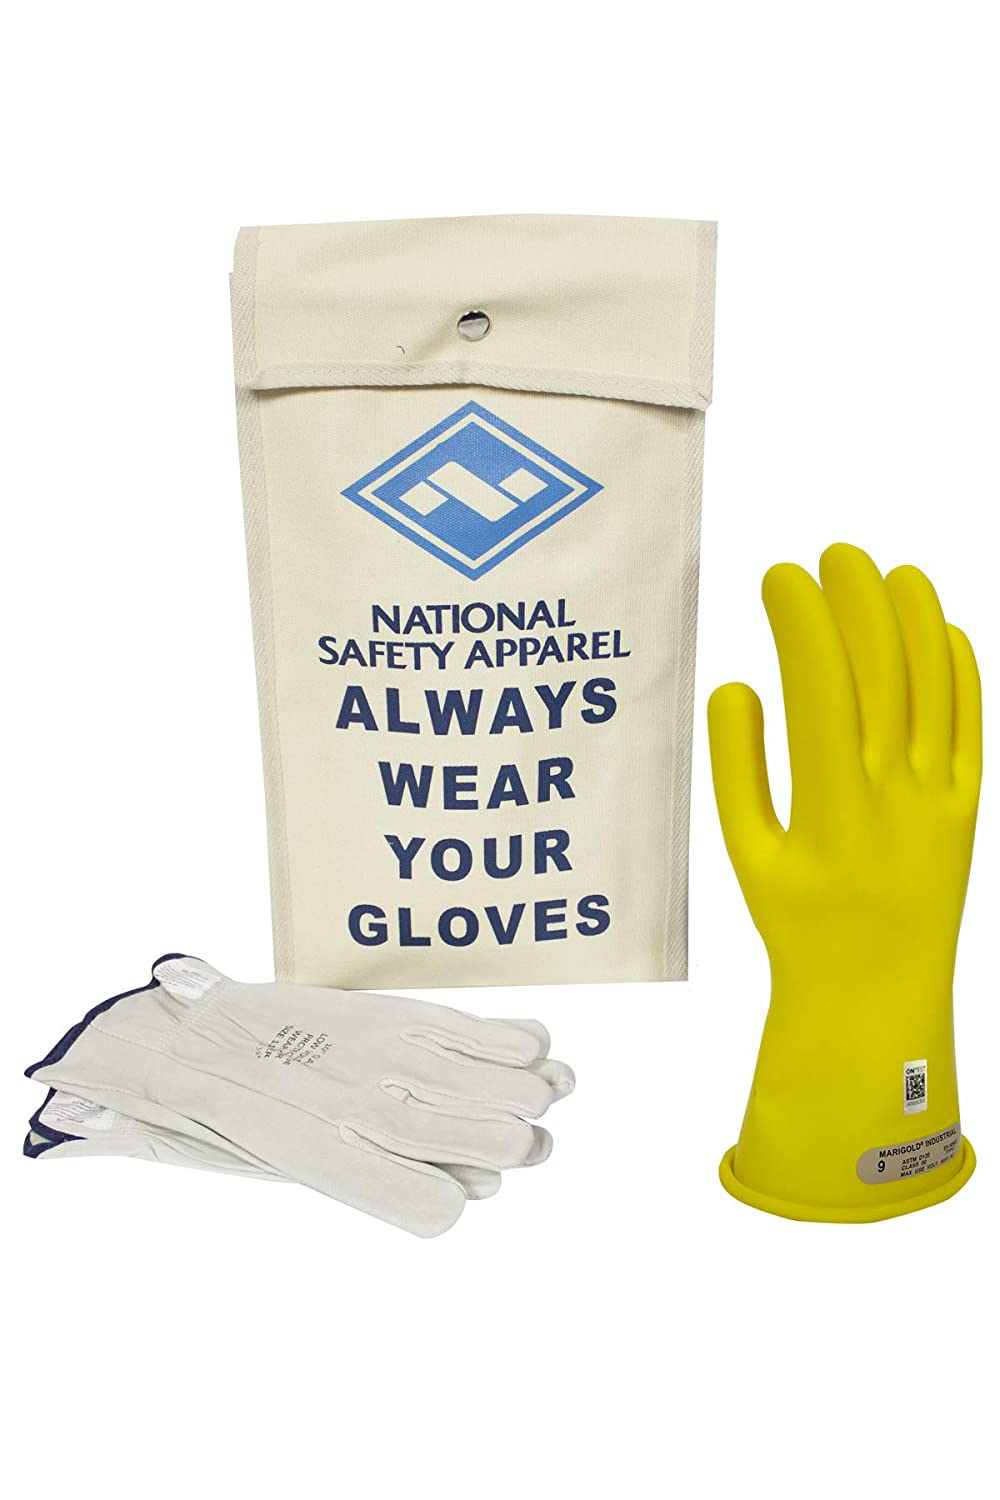 National Safety Apparel Class 00 Yellow Rubber Voltage Insulating Glove Kit with Leather Protectors Use Voltage 500V AC// 750V DC KITGC0010Y Max